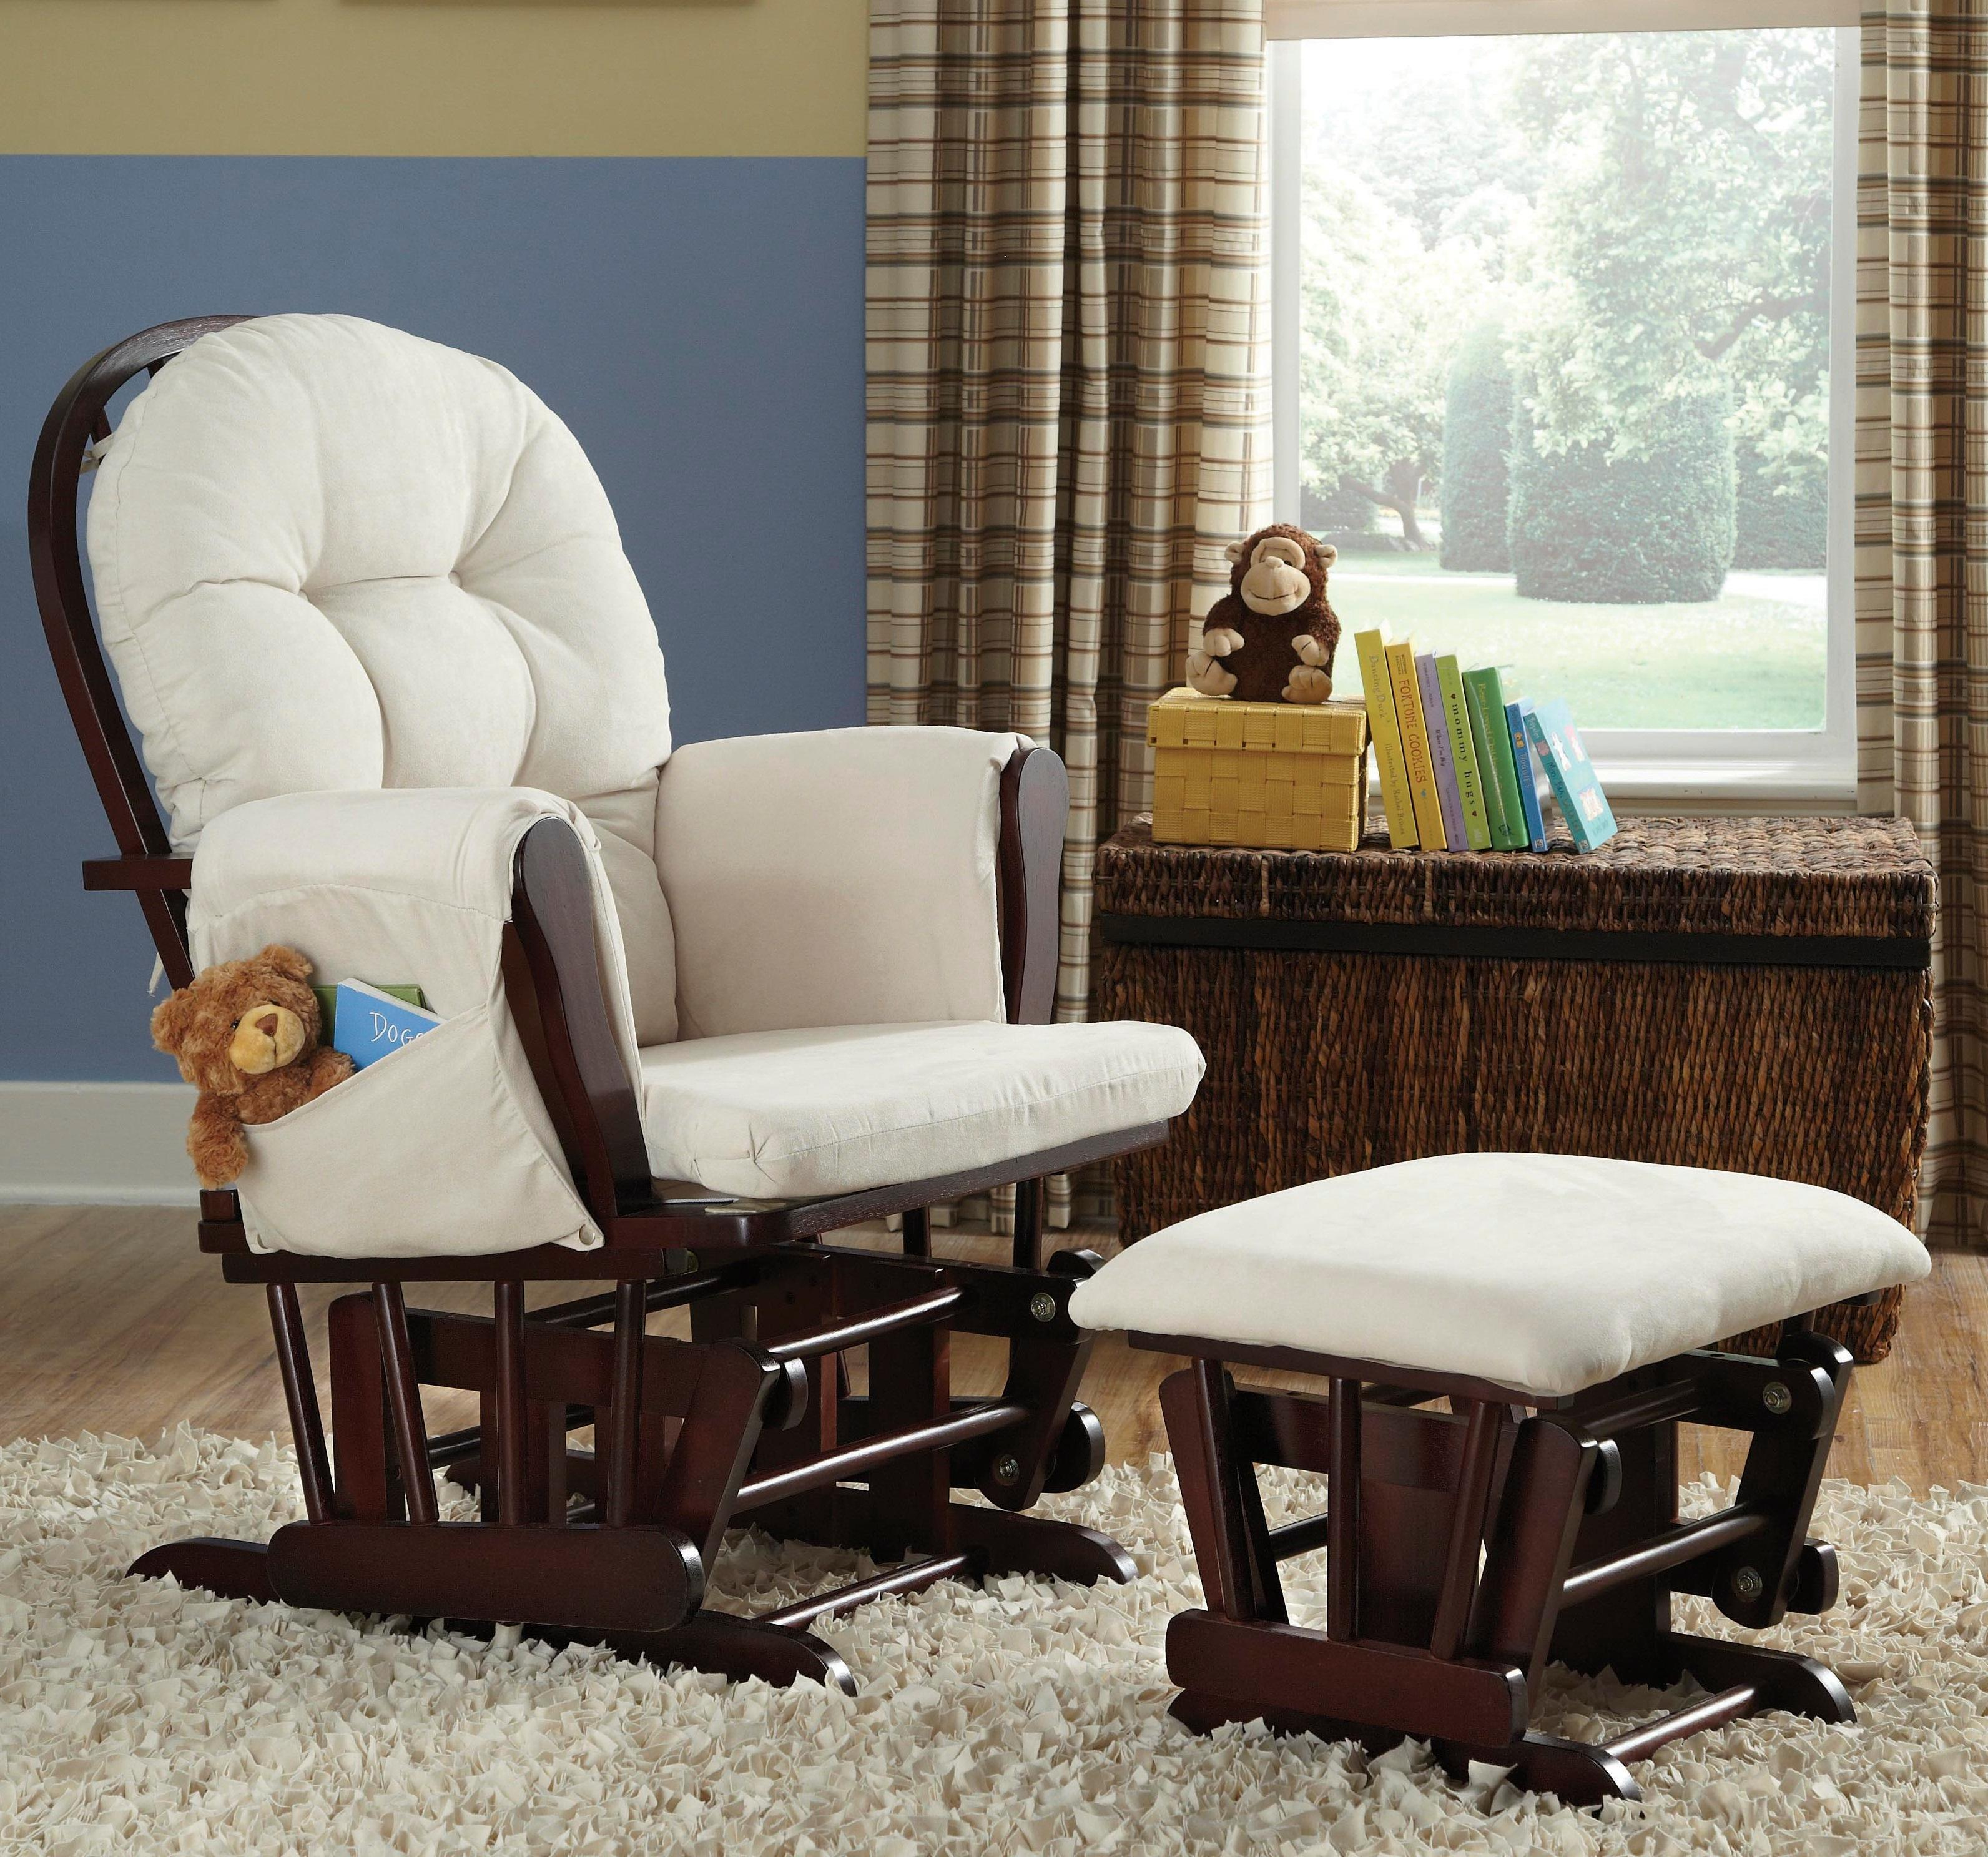 Nursery chair and ottoman - View Larger